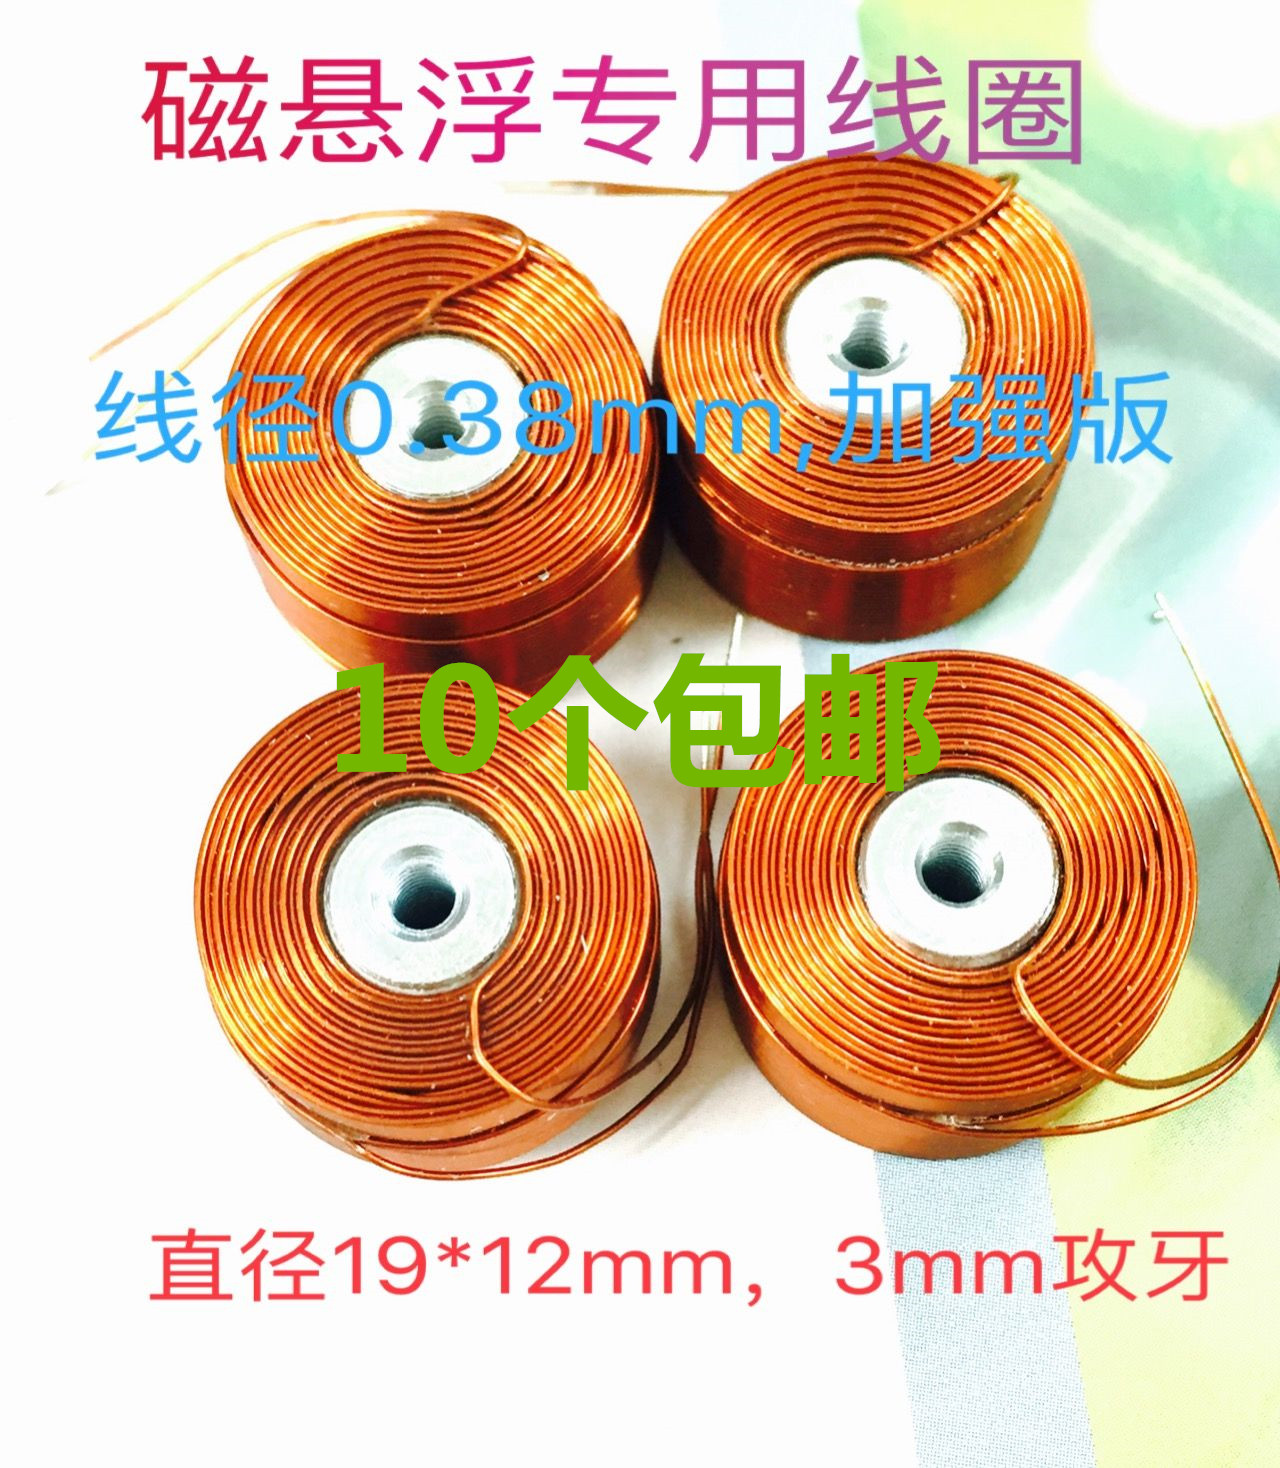 Usd 483 10 Magnetic Levitation Dedicated Coil 1912mm Whole Row Of A Circuit Diagram An Electromagnet Send Schematic Share Beautiful High Quality Copper